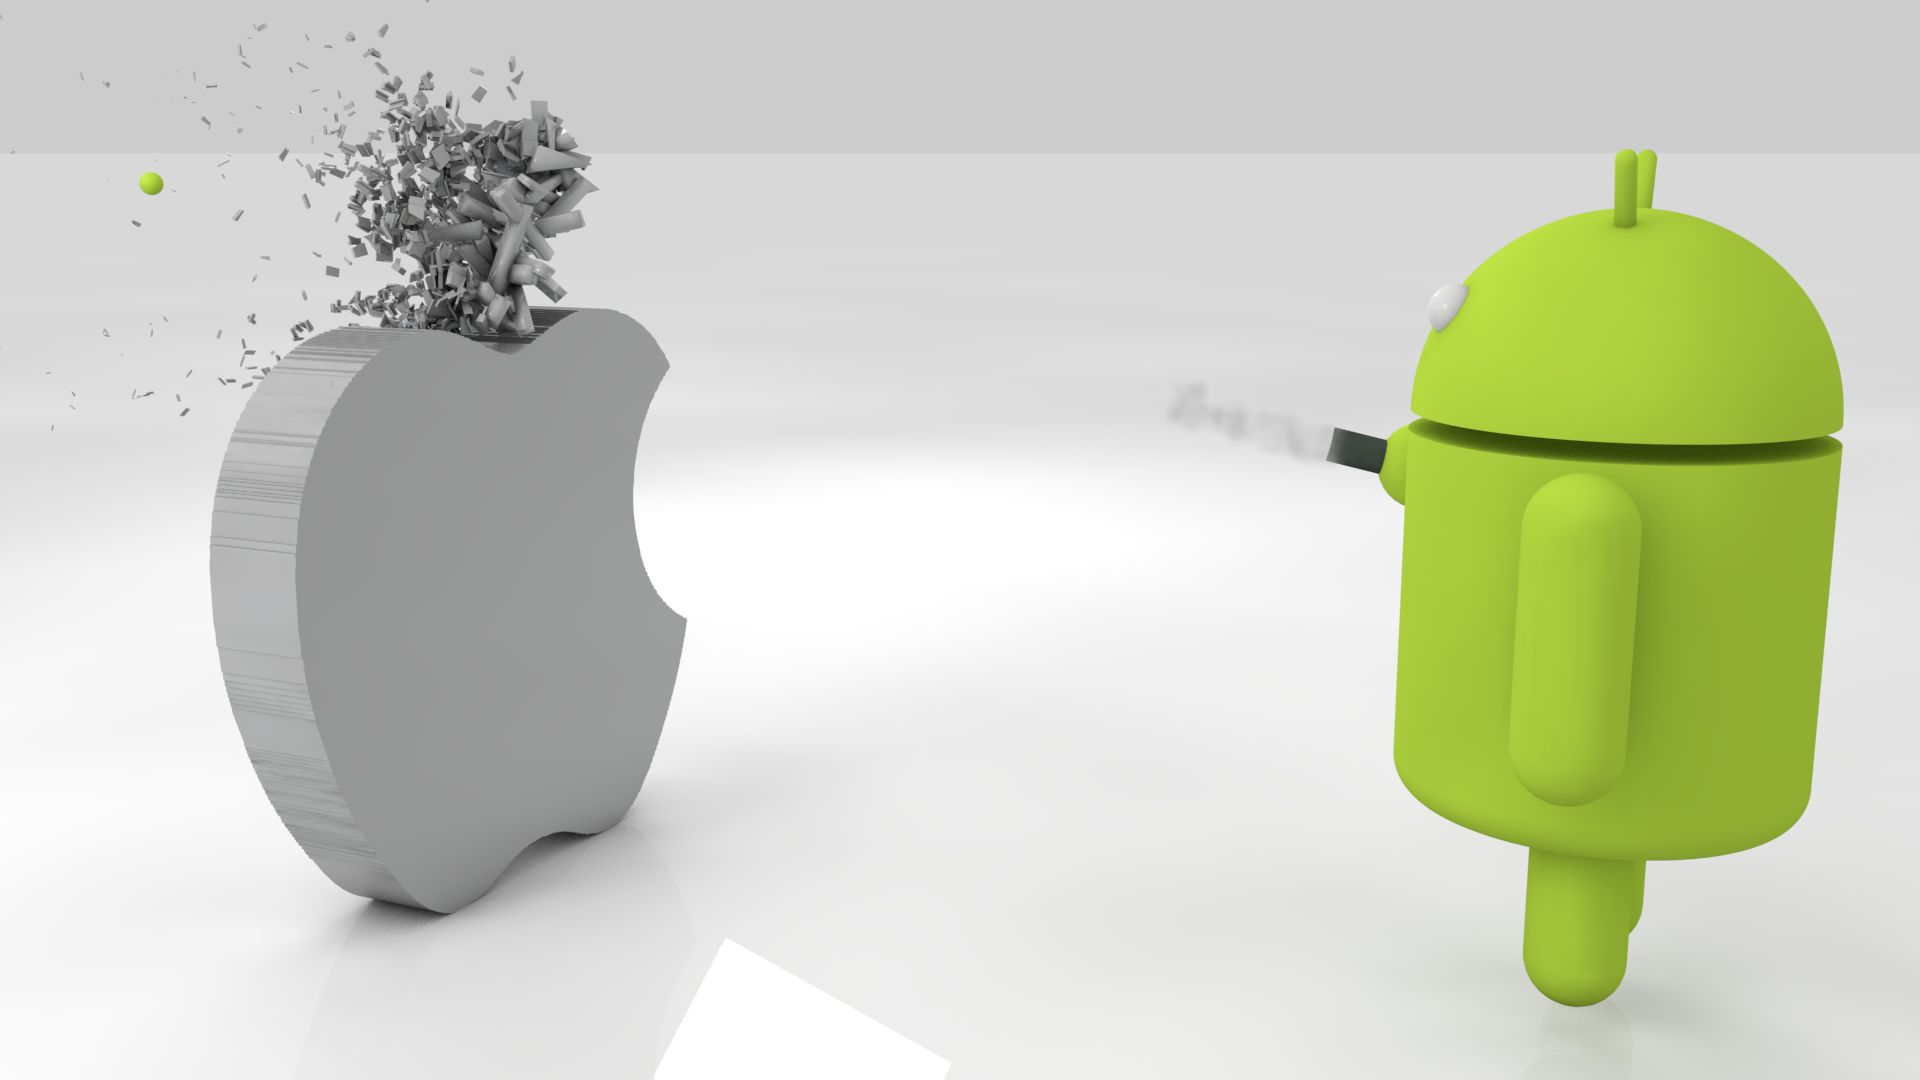 android vs apple funny wallpapers android vs apple funny wallpapers 1920x1080